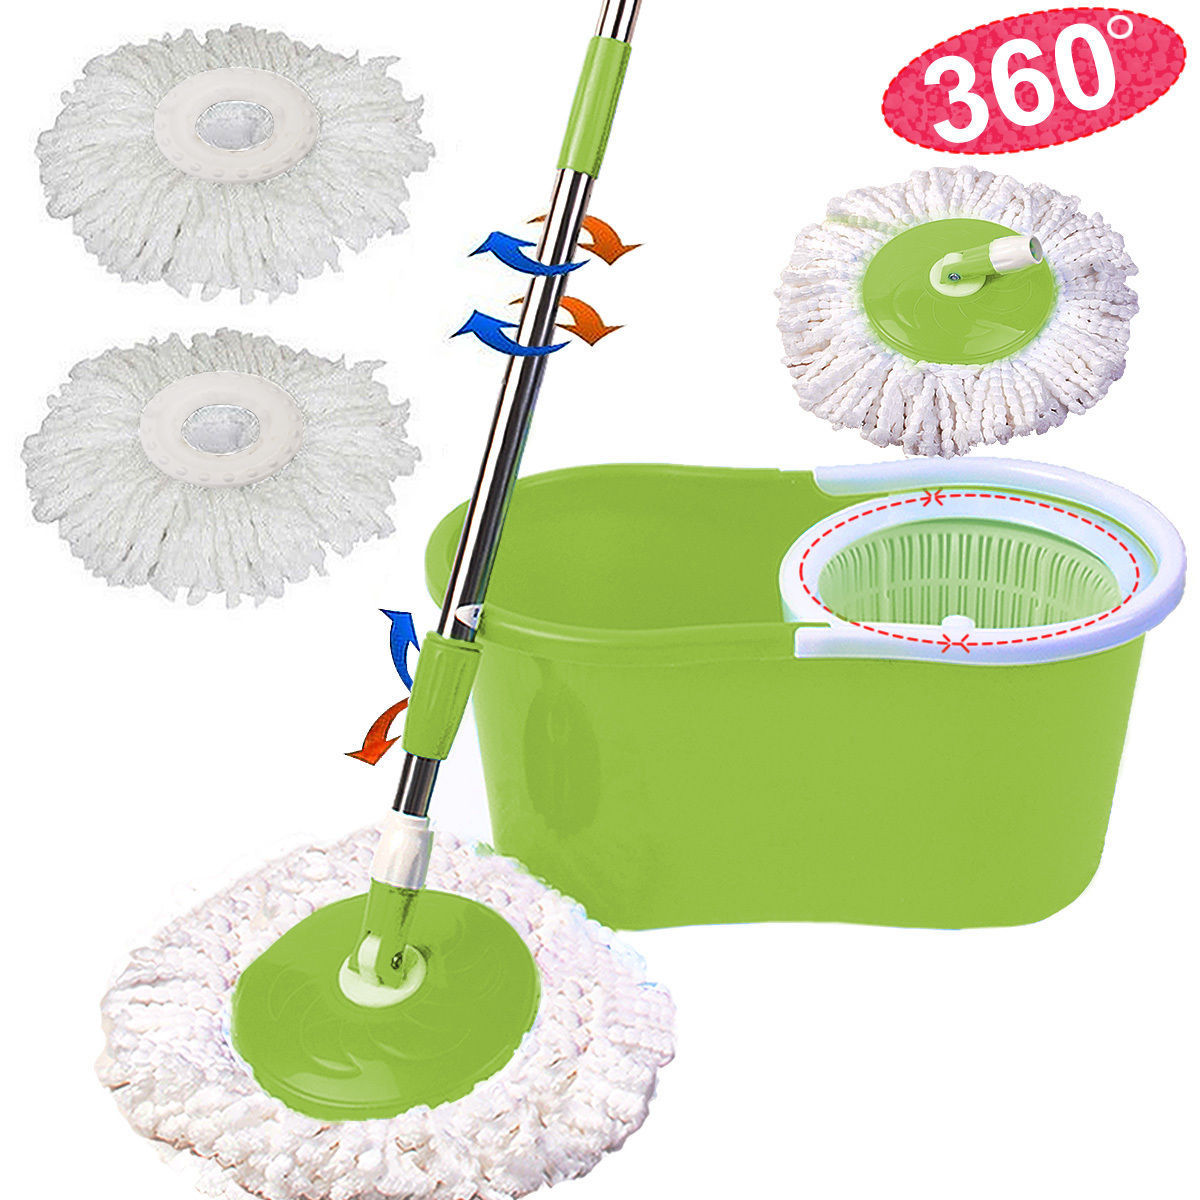 Zimtown Microfiber Spining Magic Mop W/Bucket 2 Heads Rotating 360 degree Easy Floor Mop